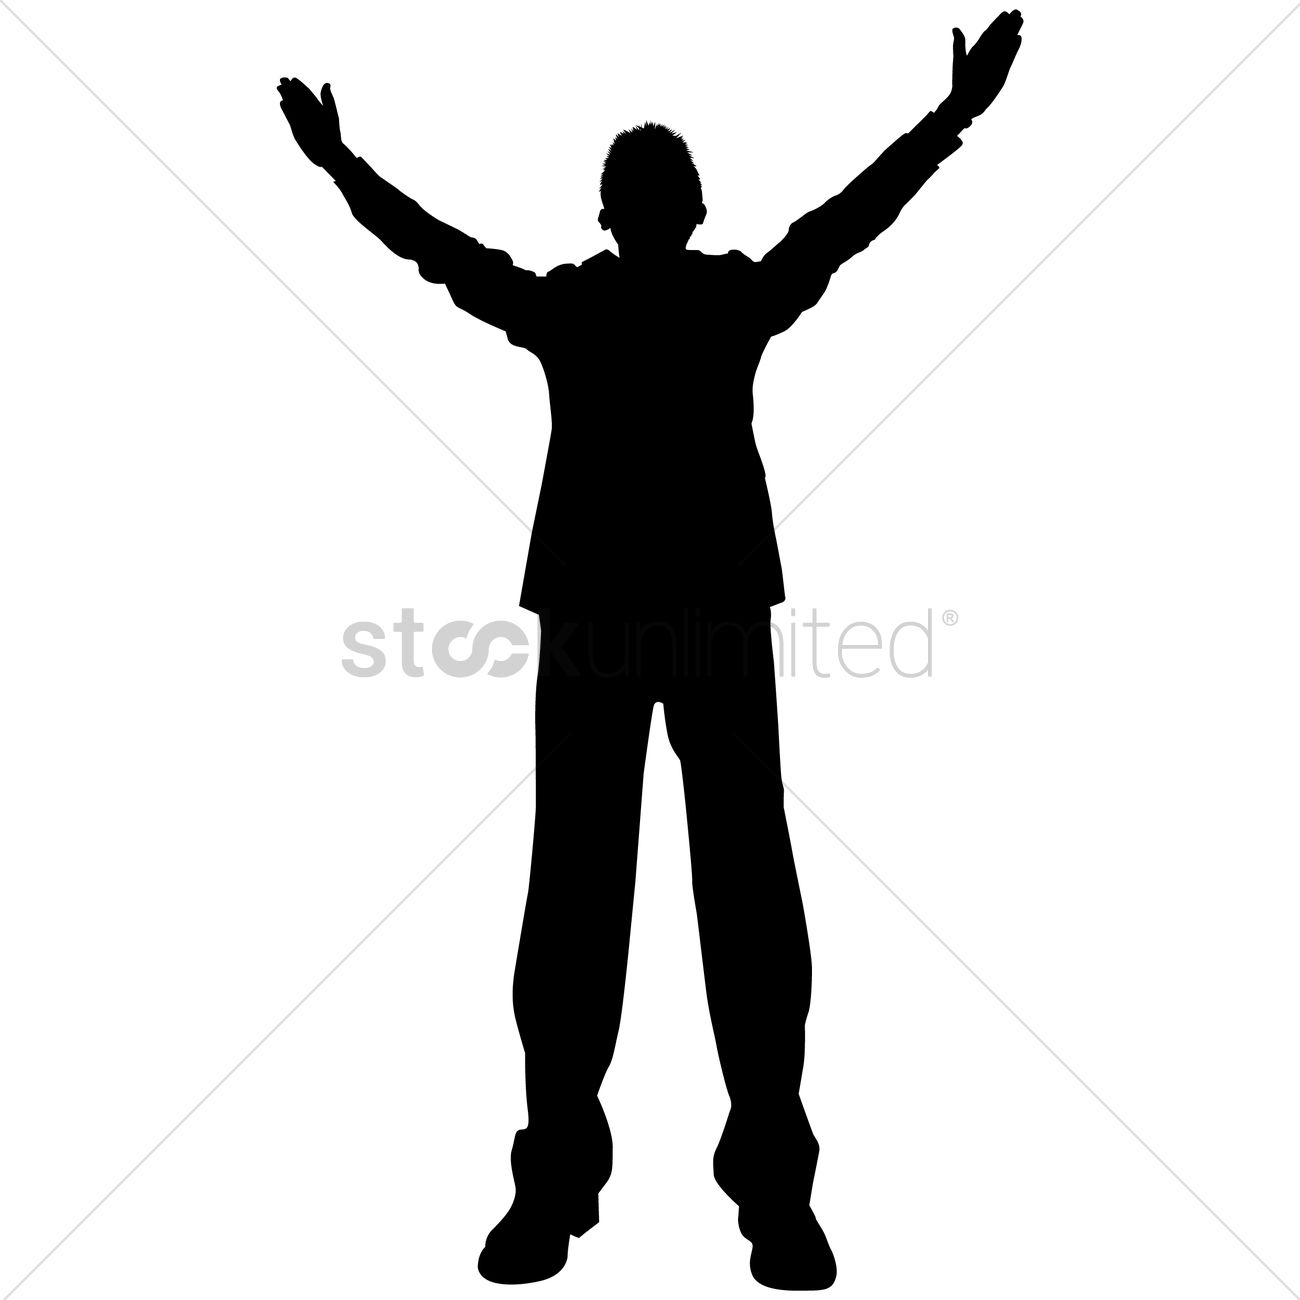 Silhouette Man With Arms Raised.